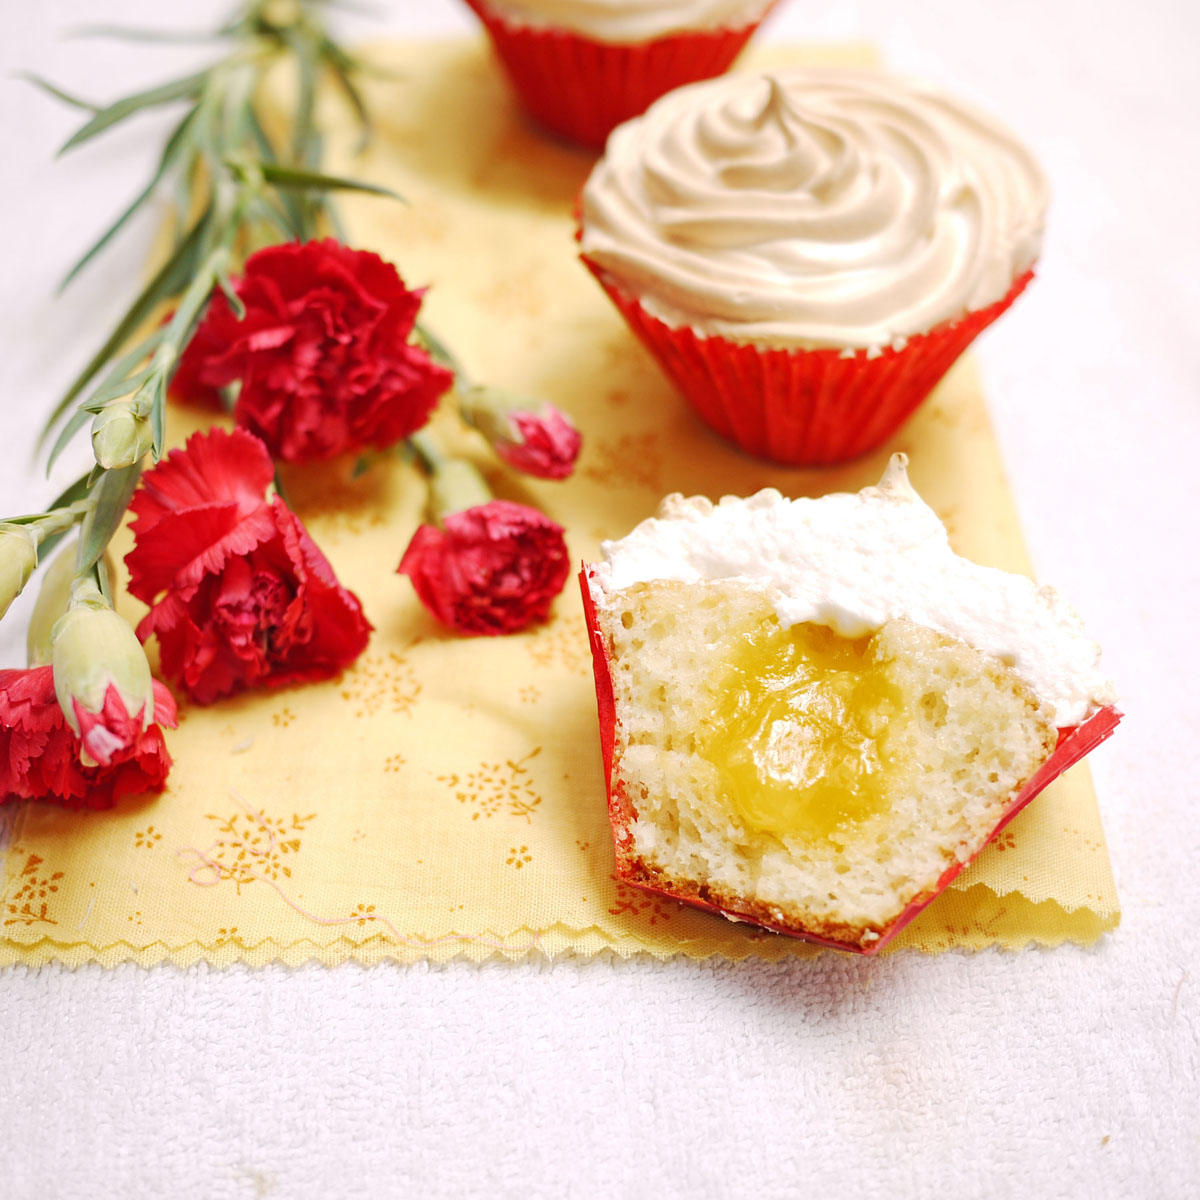 ... featured in the first mystery box challenge -Lemon meringue cupcakes